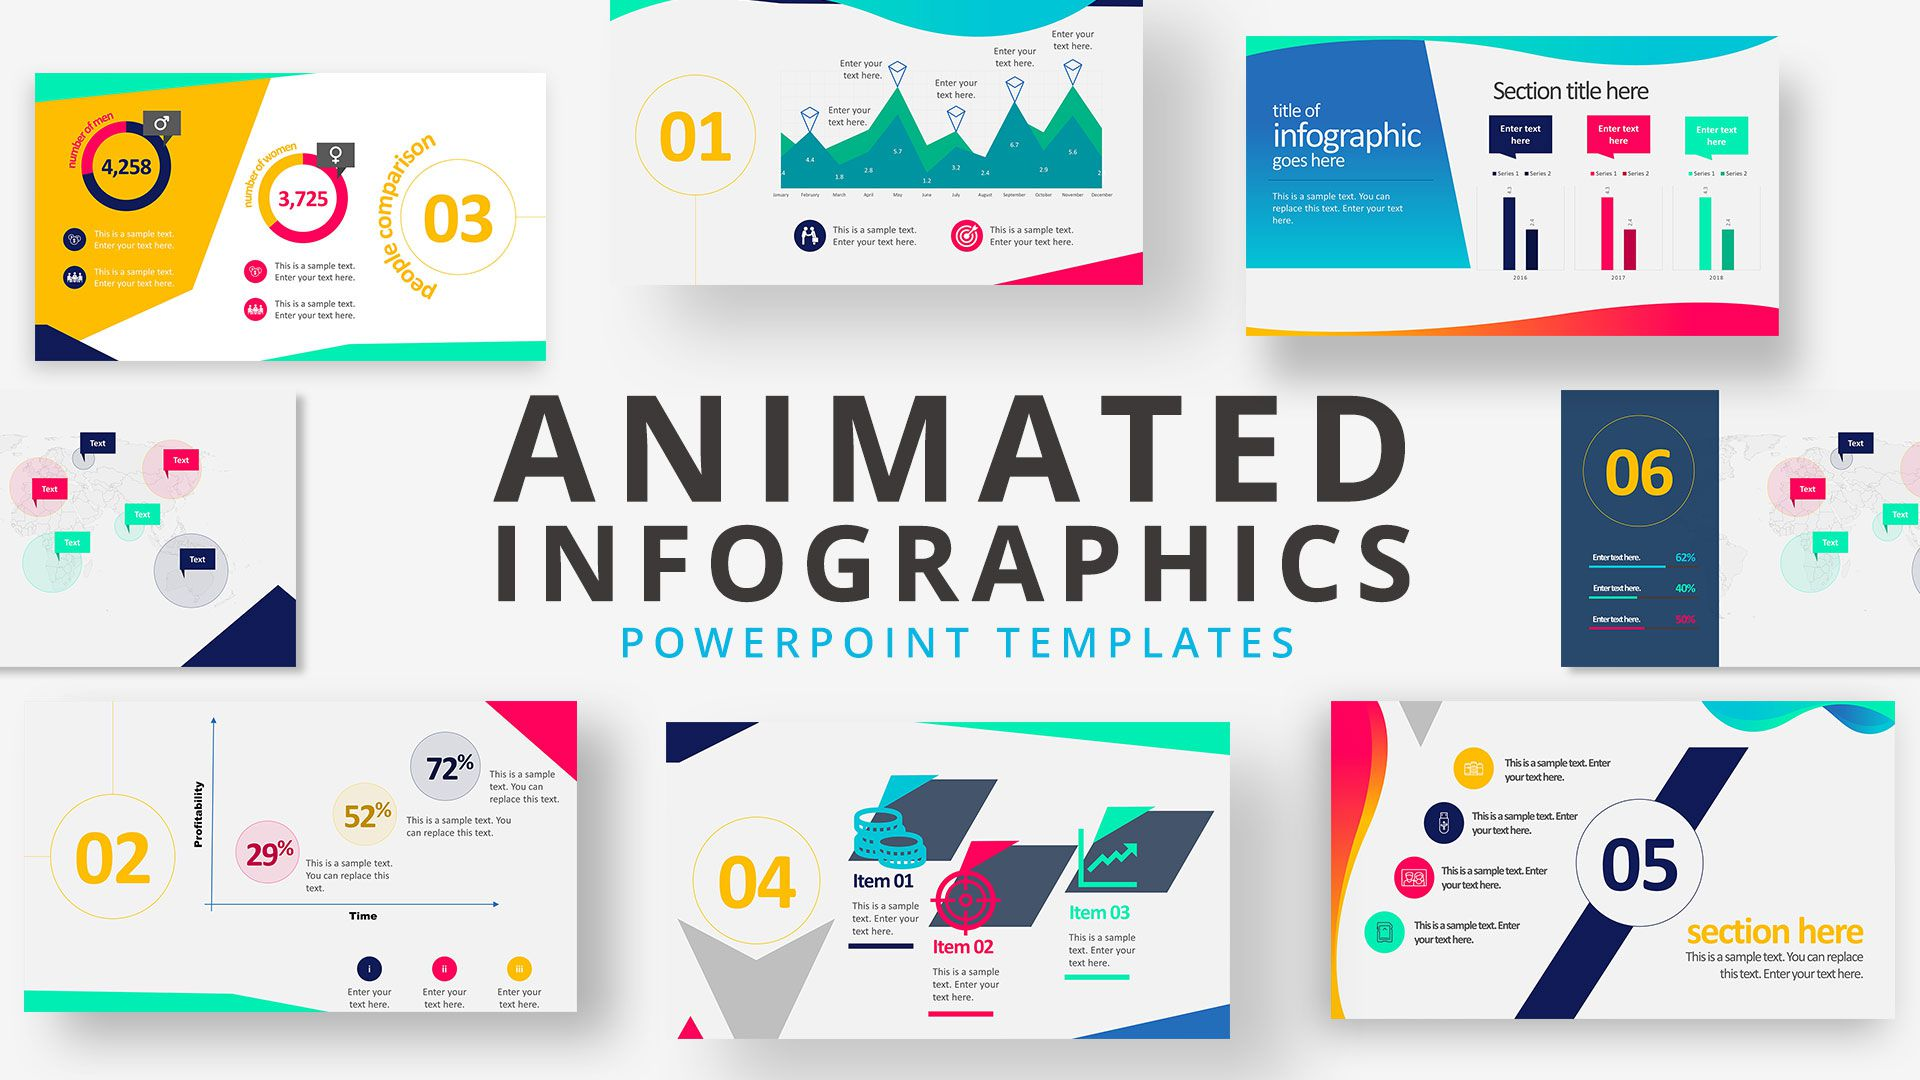 007 Sensational Animation Powerpoint Template Free Download Image  3d Animated 2016 Microsoft 2007 2014Full